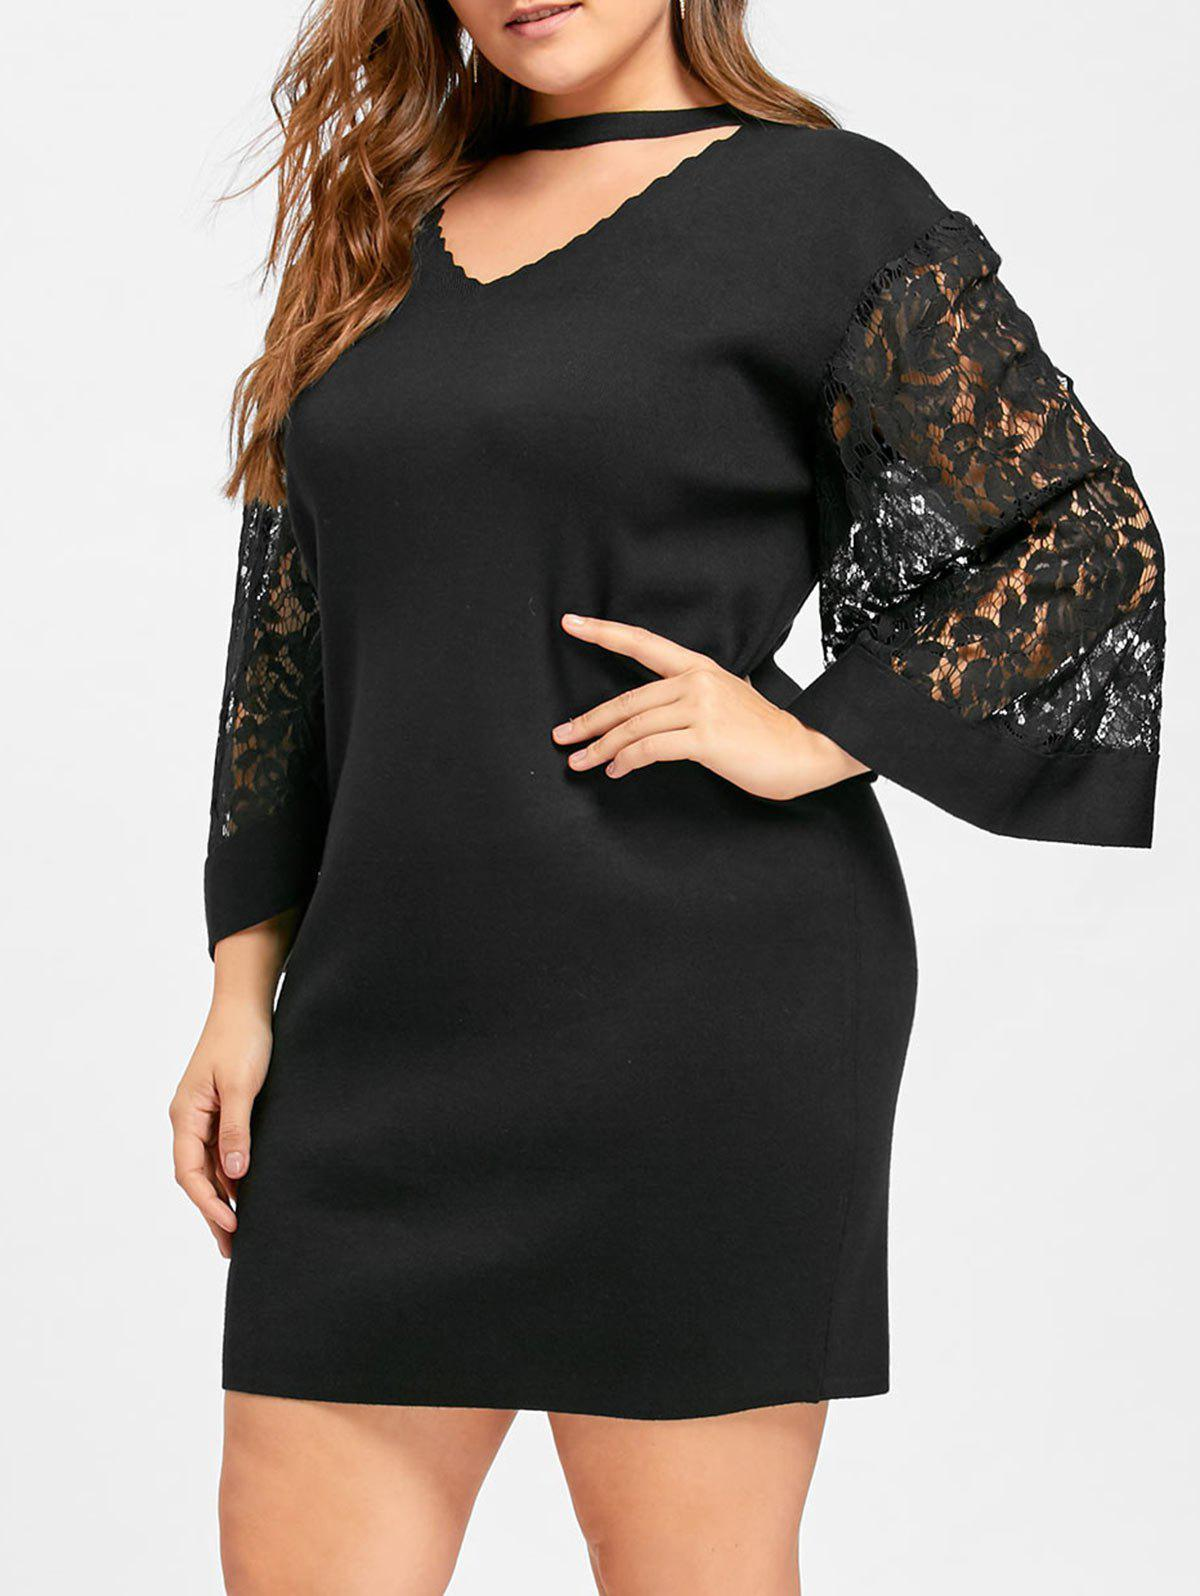 Lace Trim Sleeve Plus Size Choker Dress